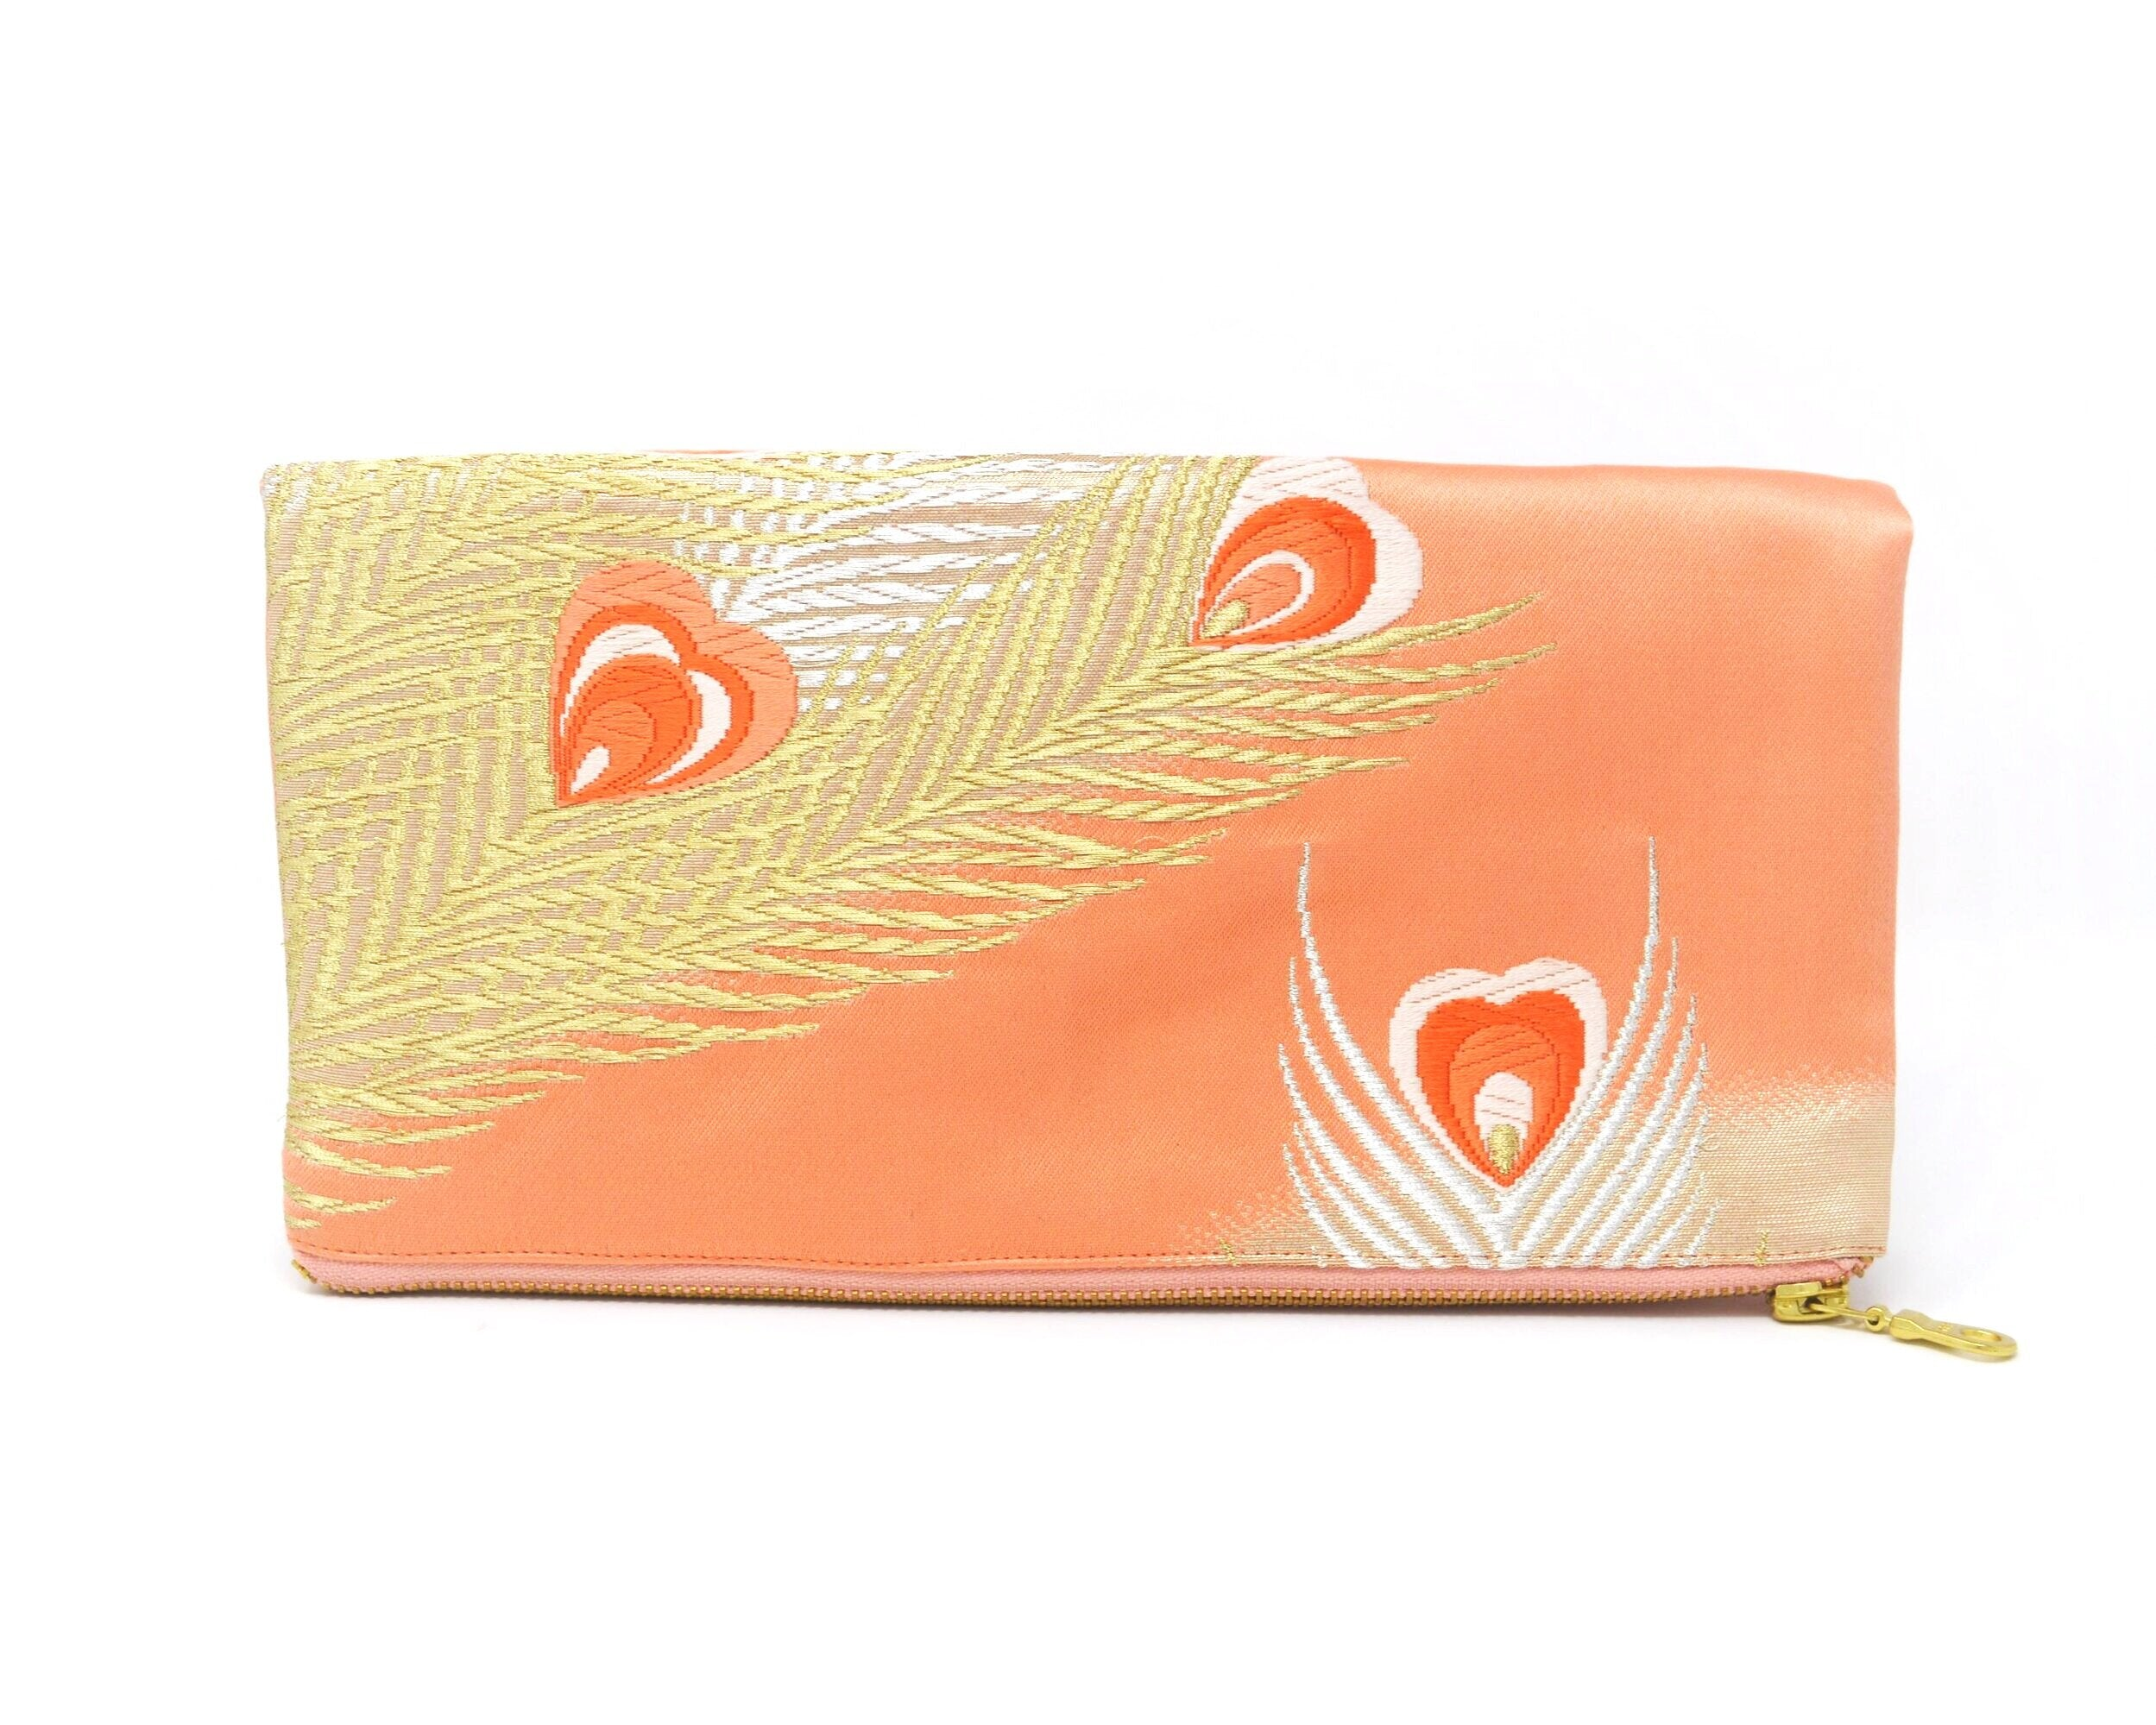 Tickled Pink - Handmade Foldover Clutch Purse